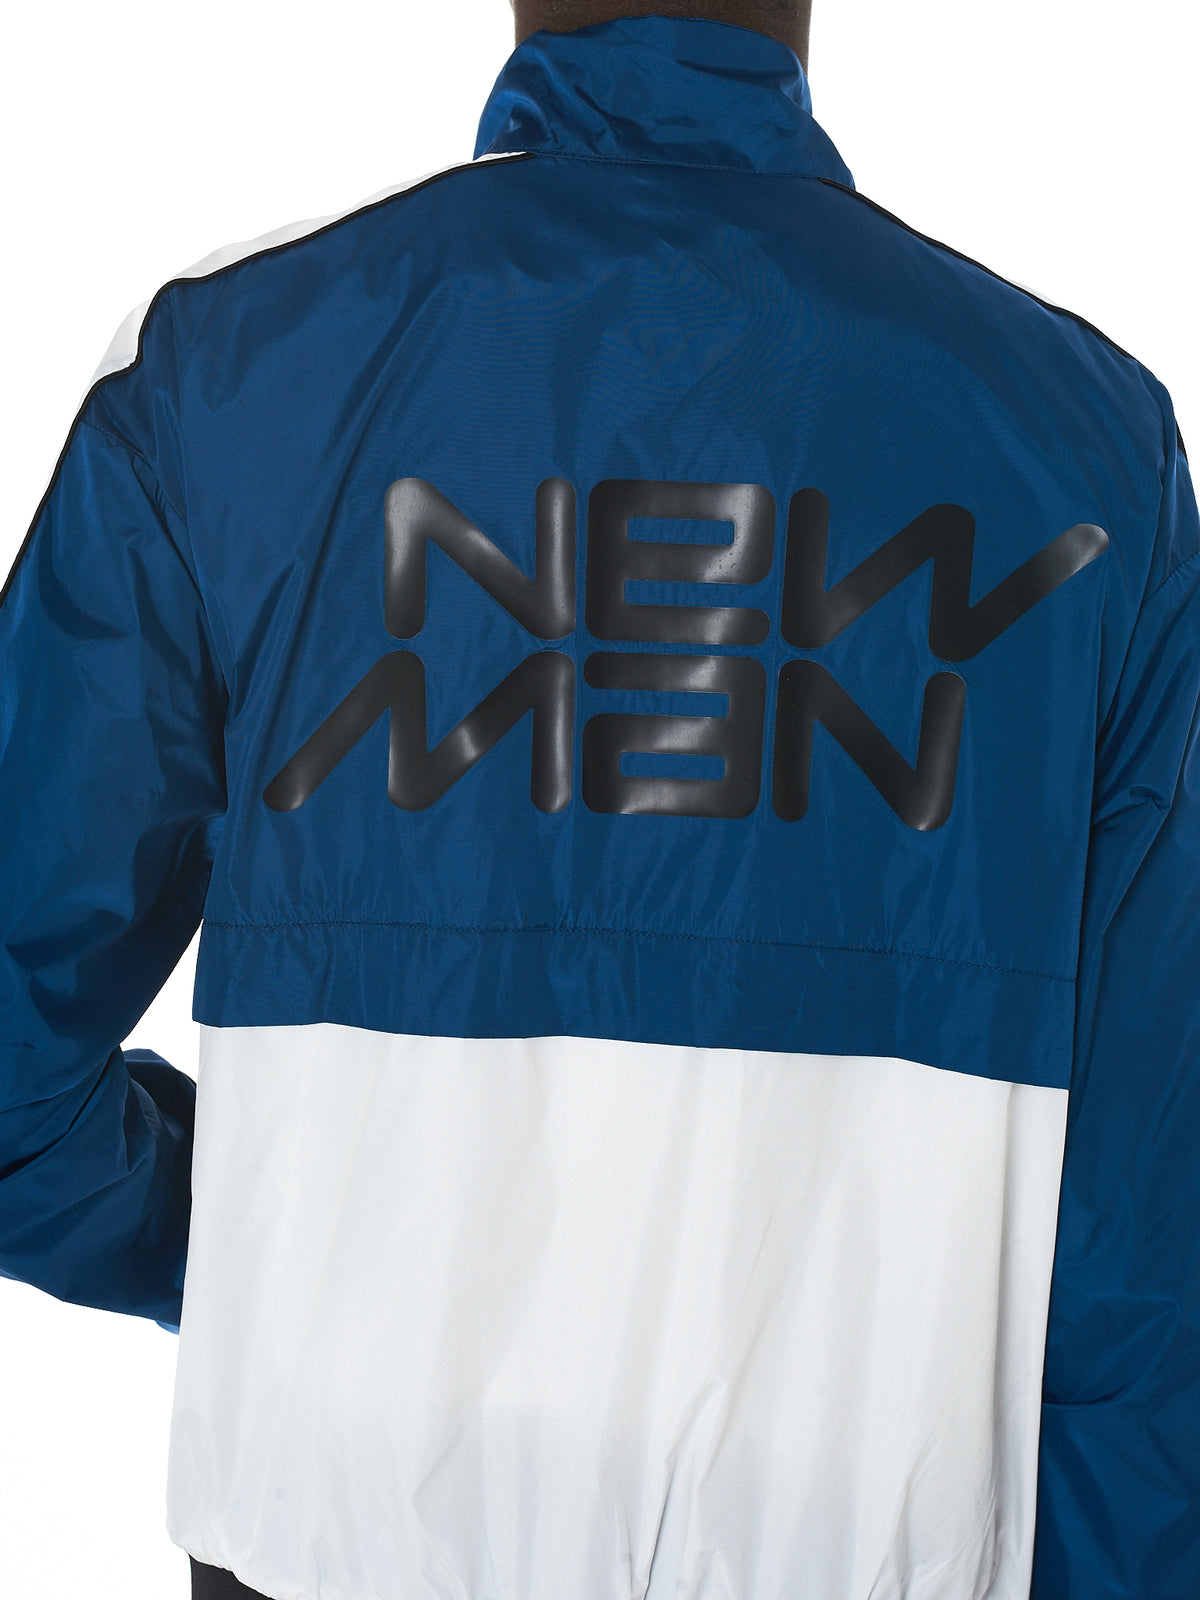 Andrea Crews Track Jacket - Hlorenzo Detail 2